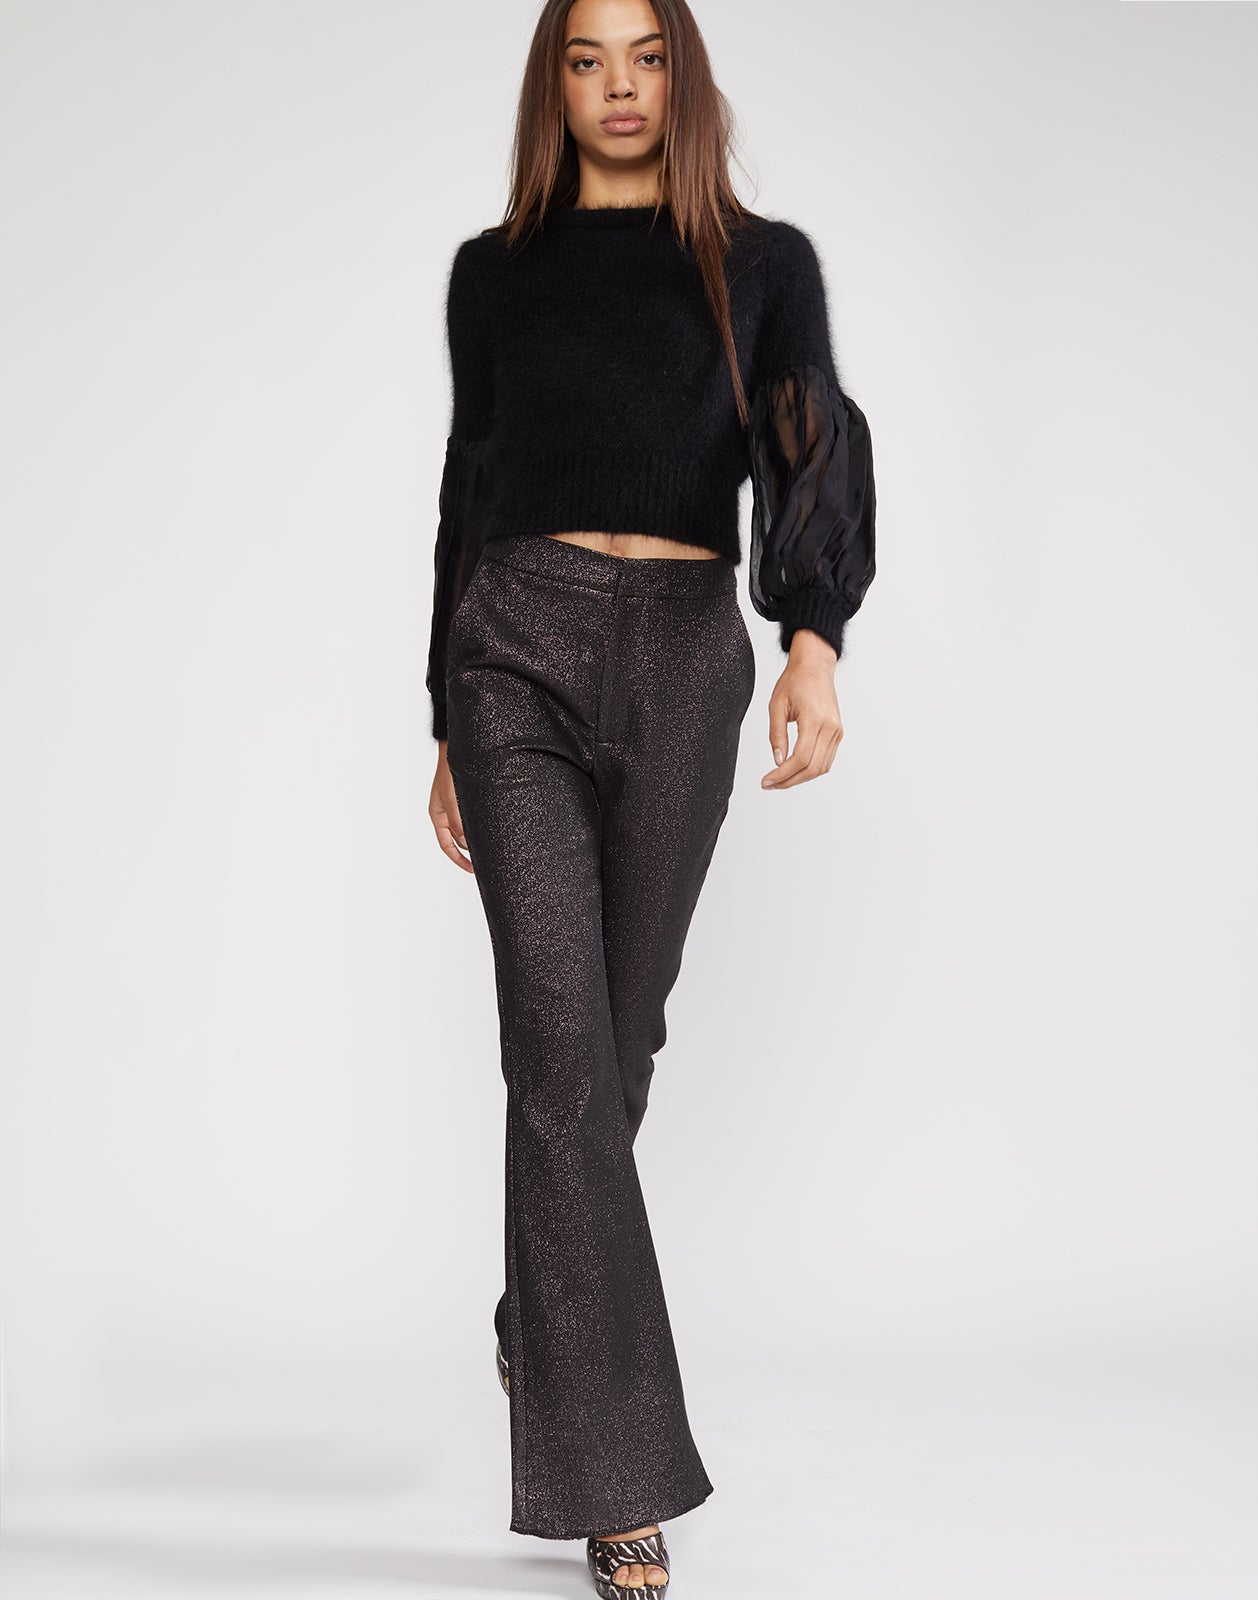 Silver shimmer flare pant with fitted waist and through the hips